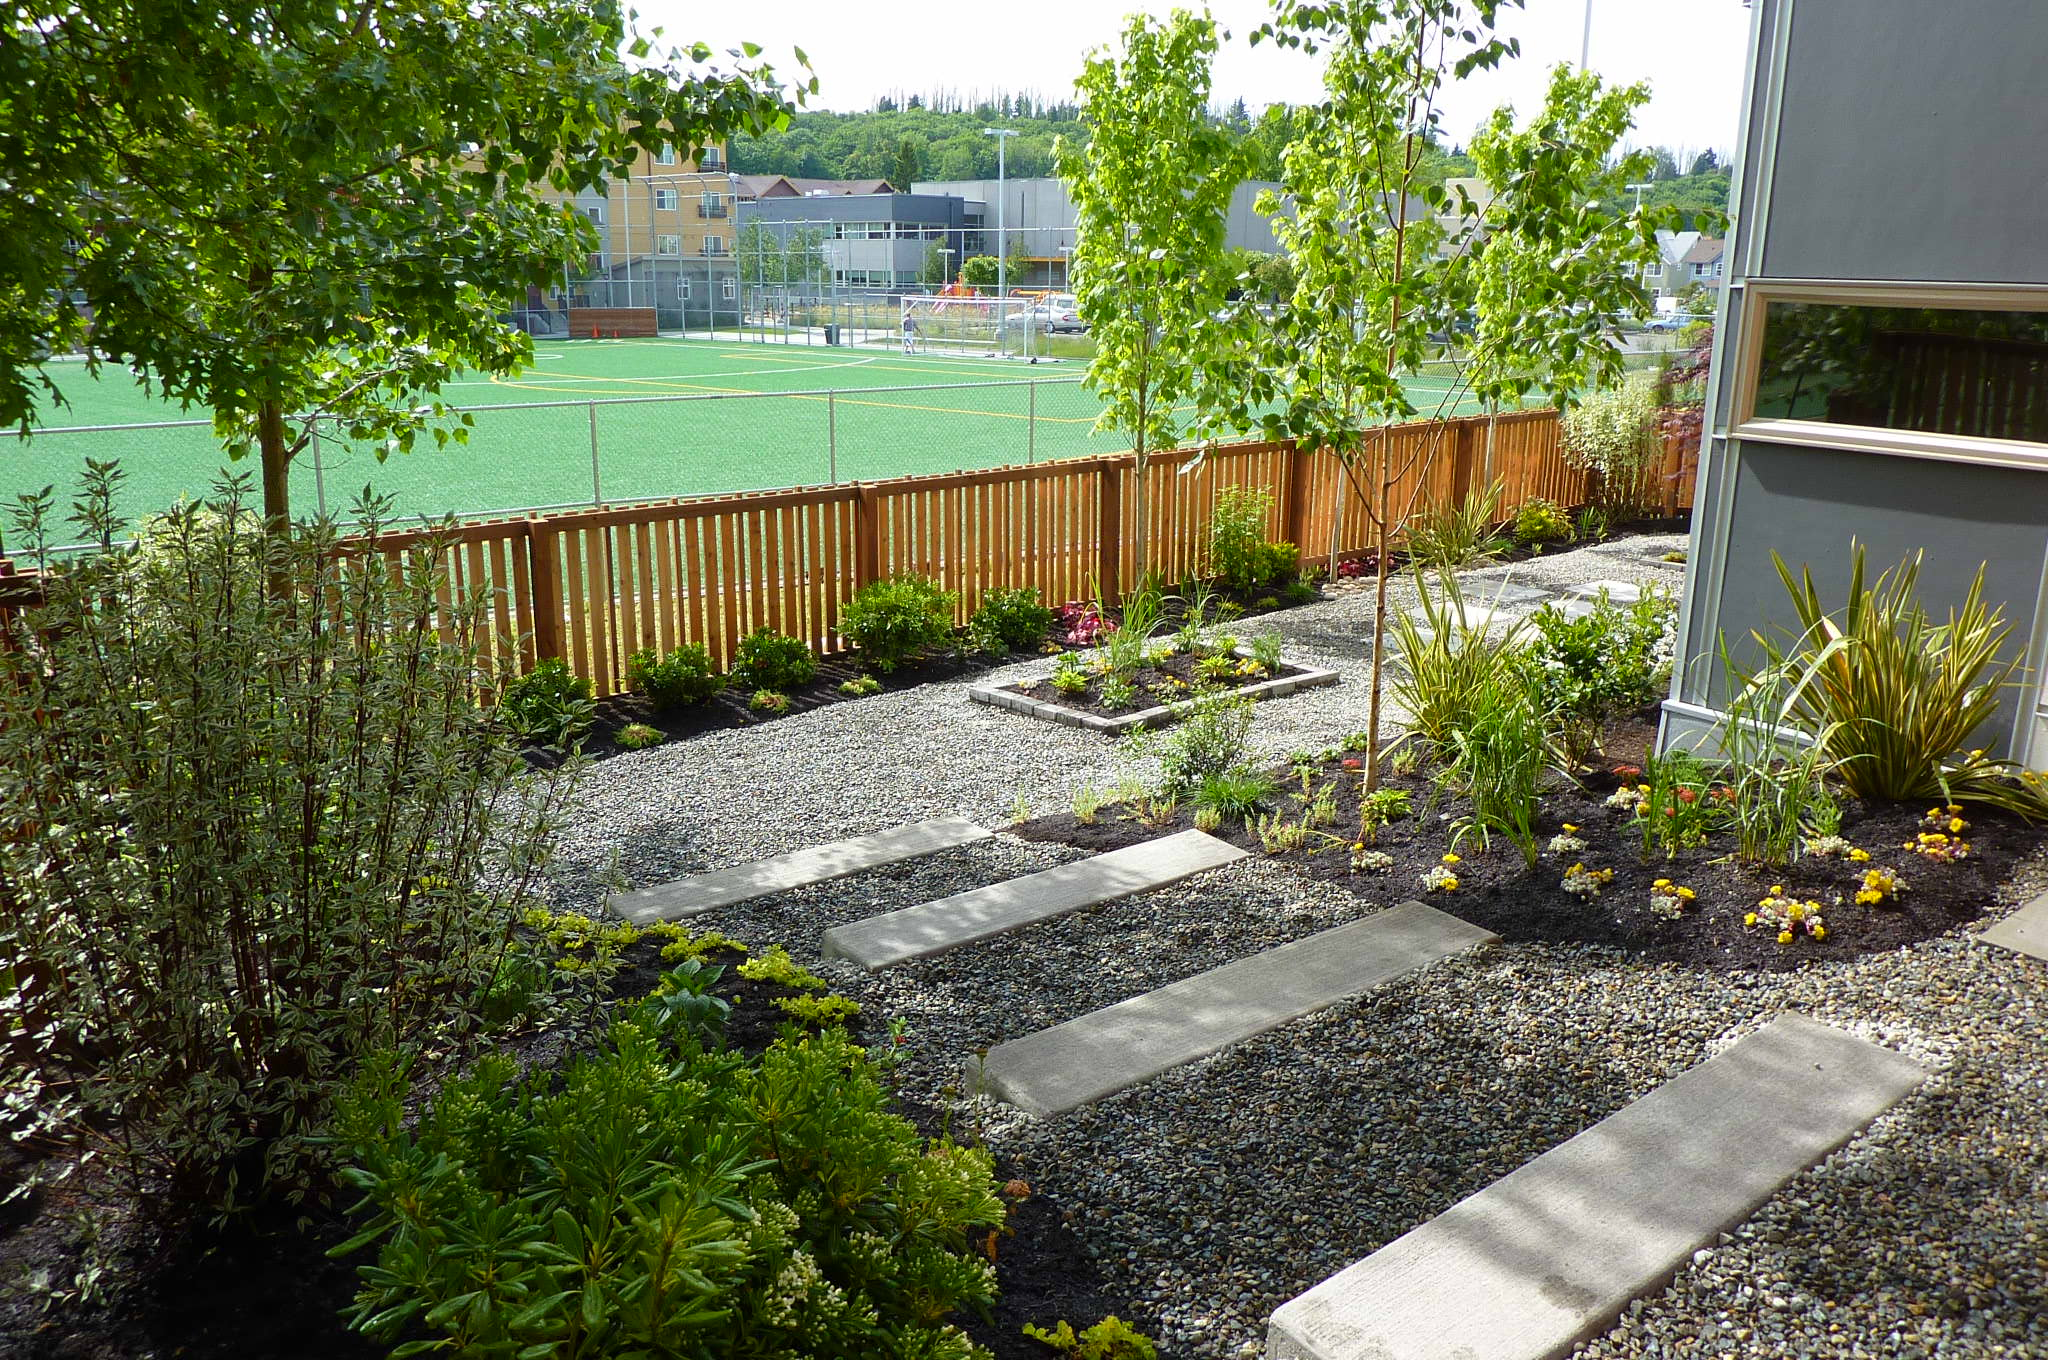 Landscape Design in Seattle Edible Landscapes and Garden Design